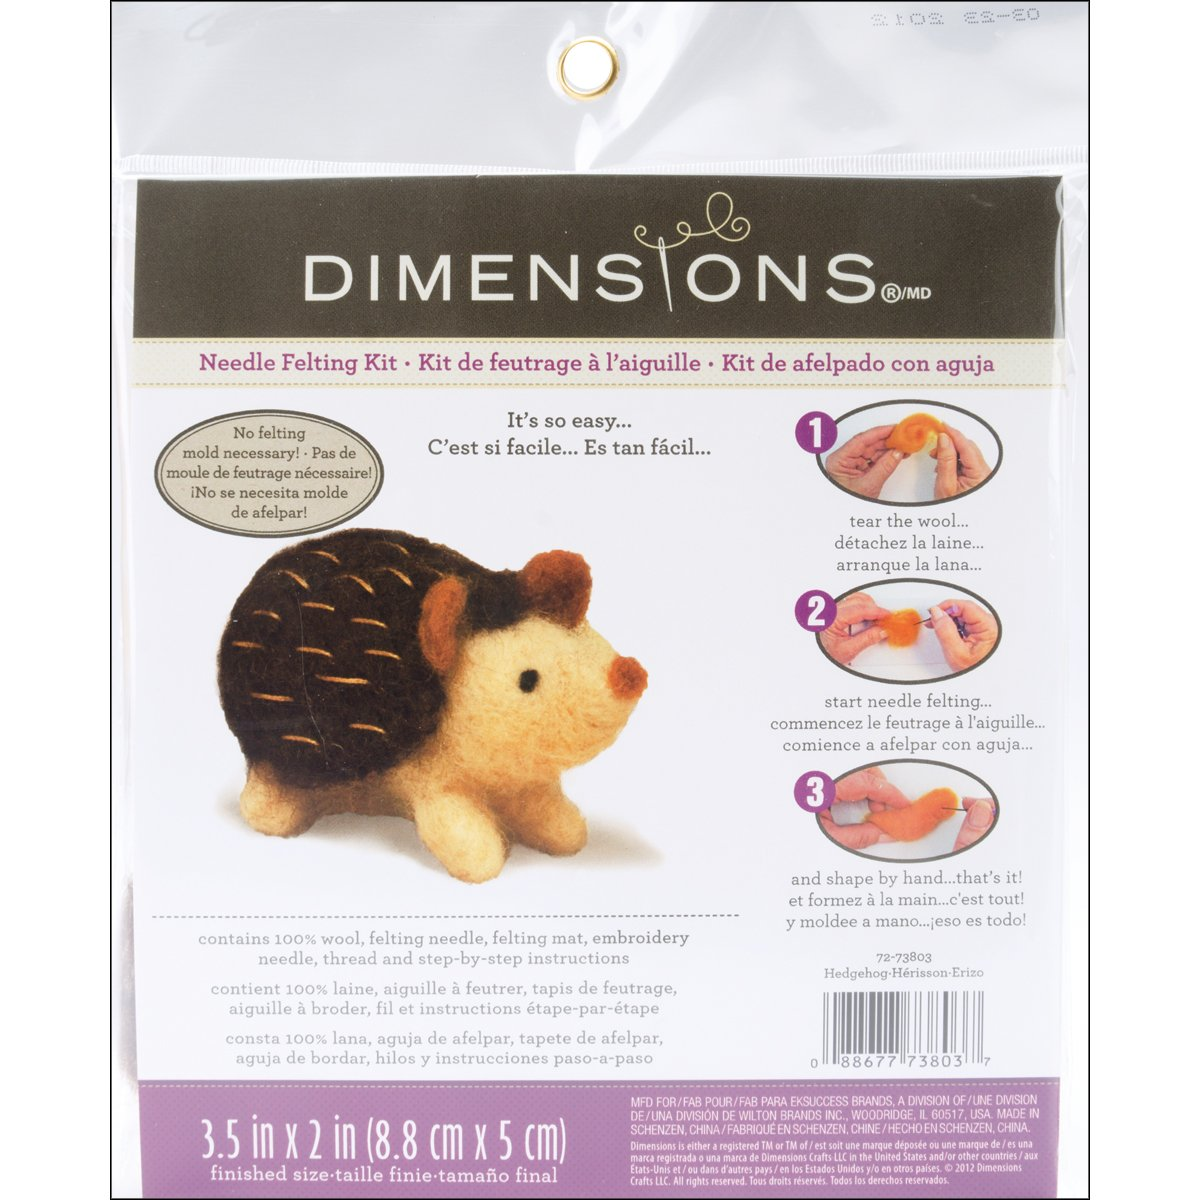 Dimensions Needlecrafts Needle Felted Character Kit, Hedgehog product image